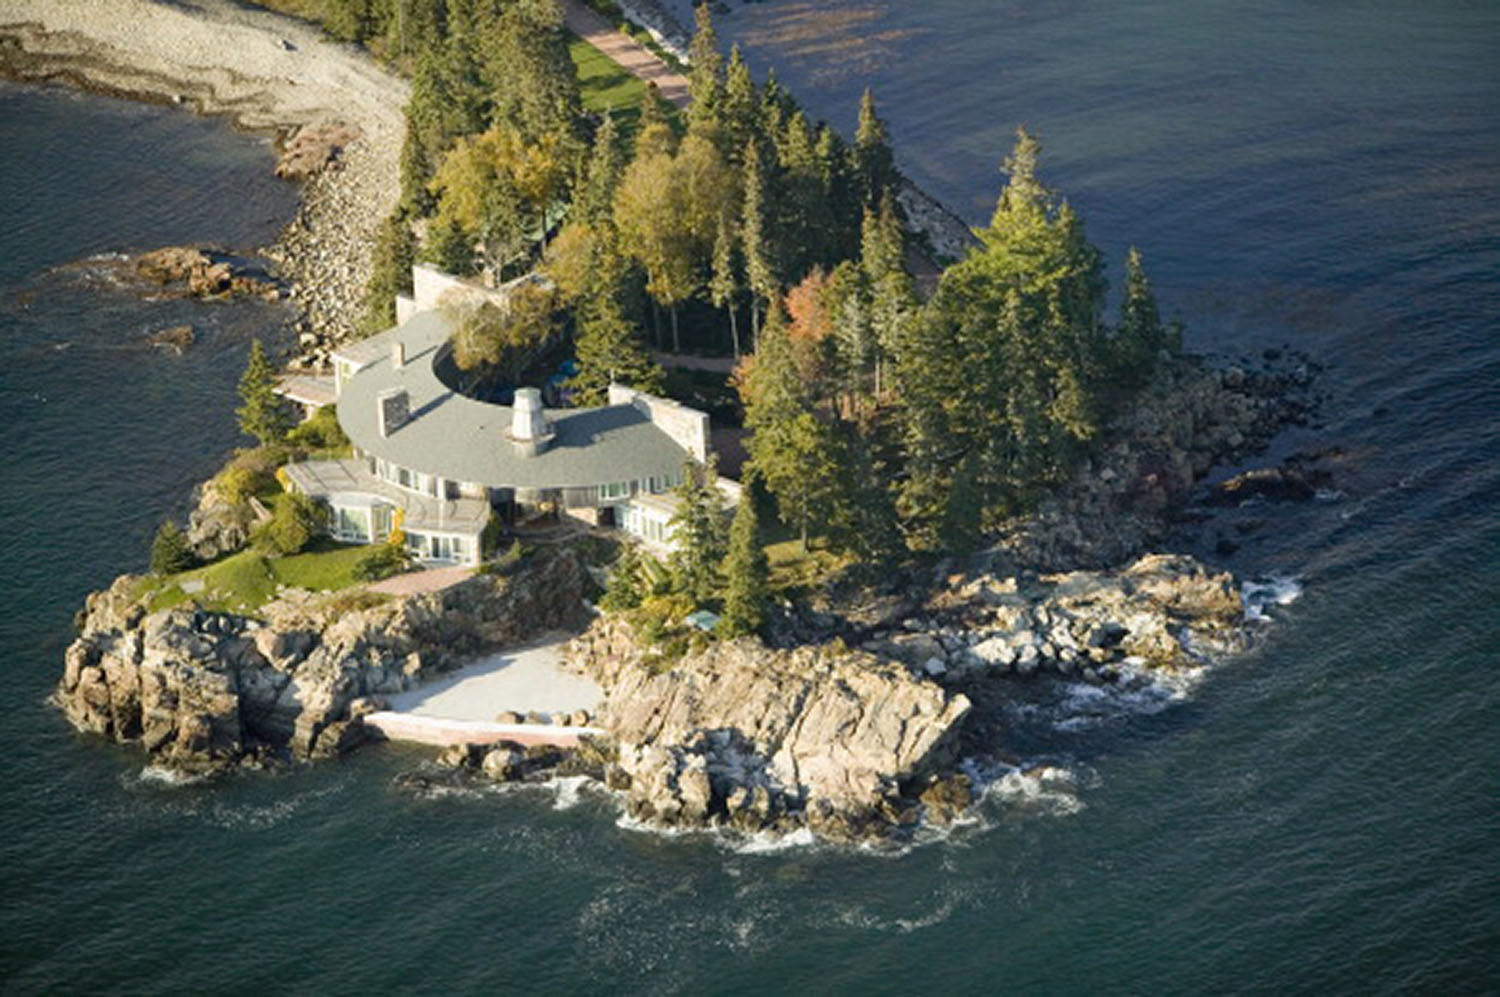 Aerial views of luxury home in Acadia National Park, Maine in autumn (Photo by Visions of America/UIG via Getty Images)